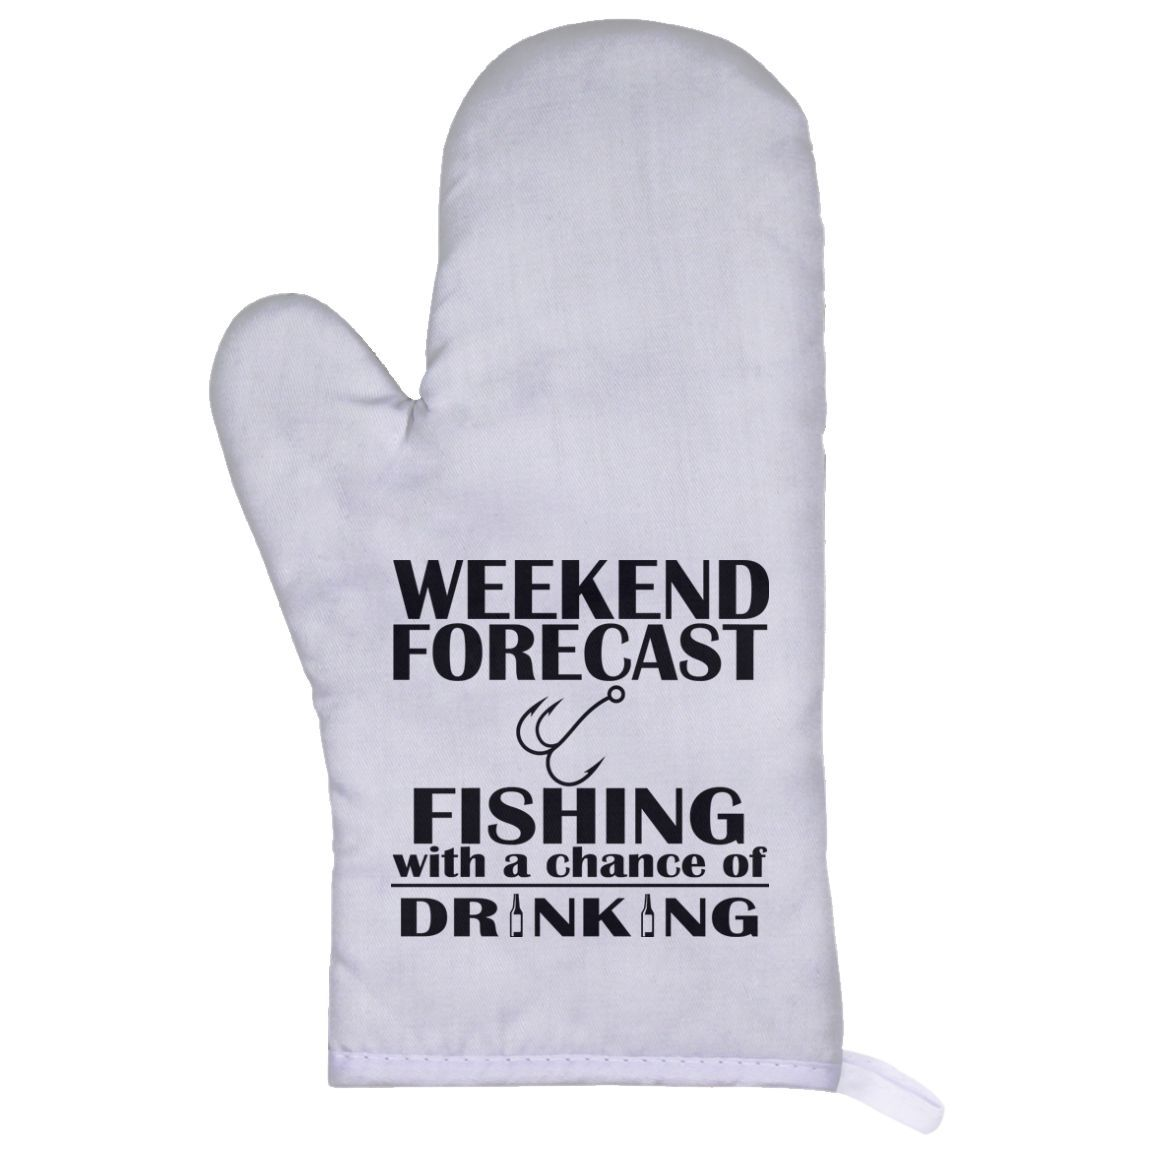 Weekend Forecast Fishing With A Chance Of Drinking Oven Mitts